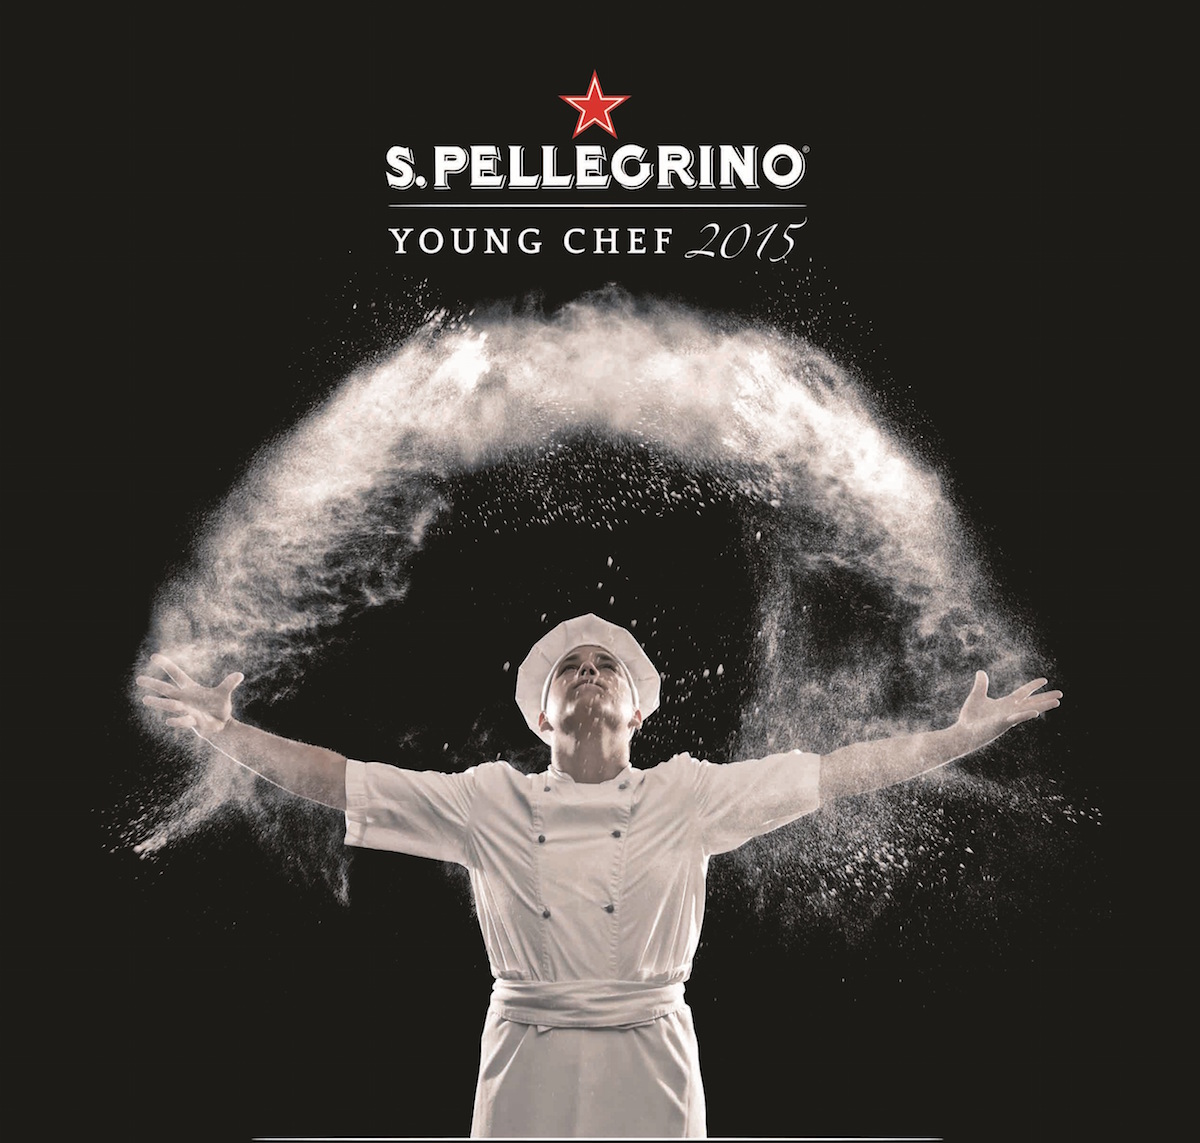 SP young chef image